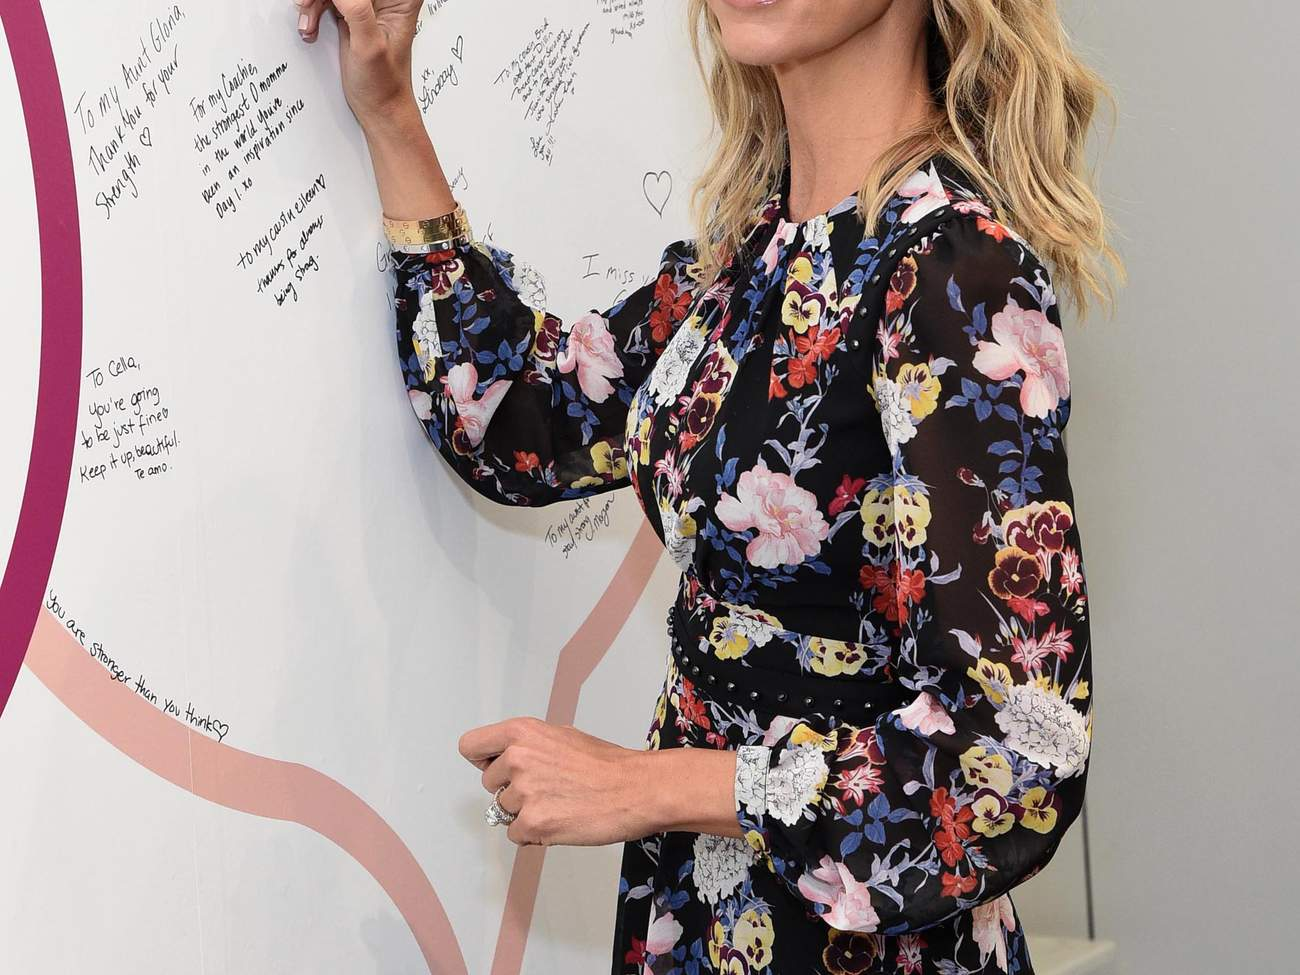 giulianna-rancic-breast-cancer-not-one-type